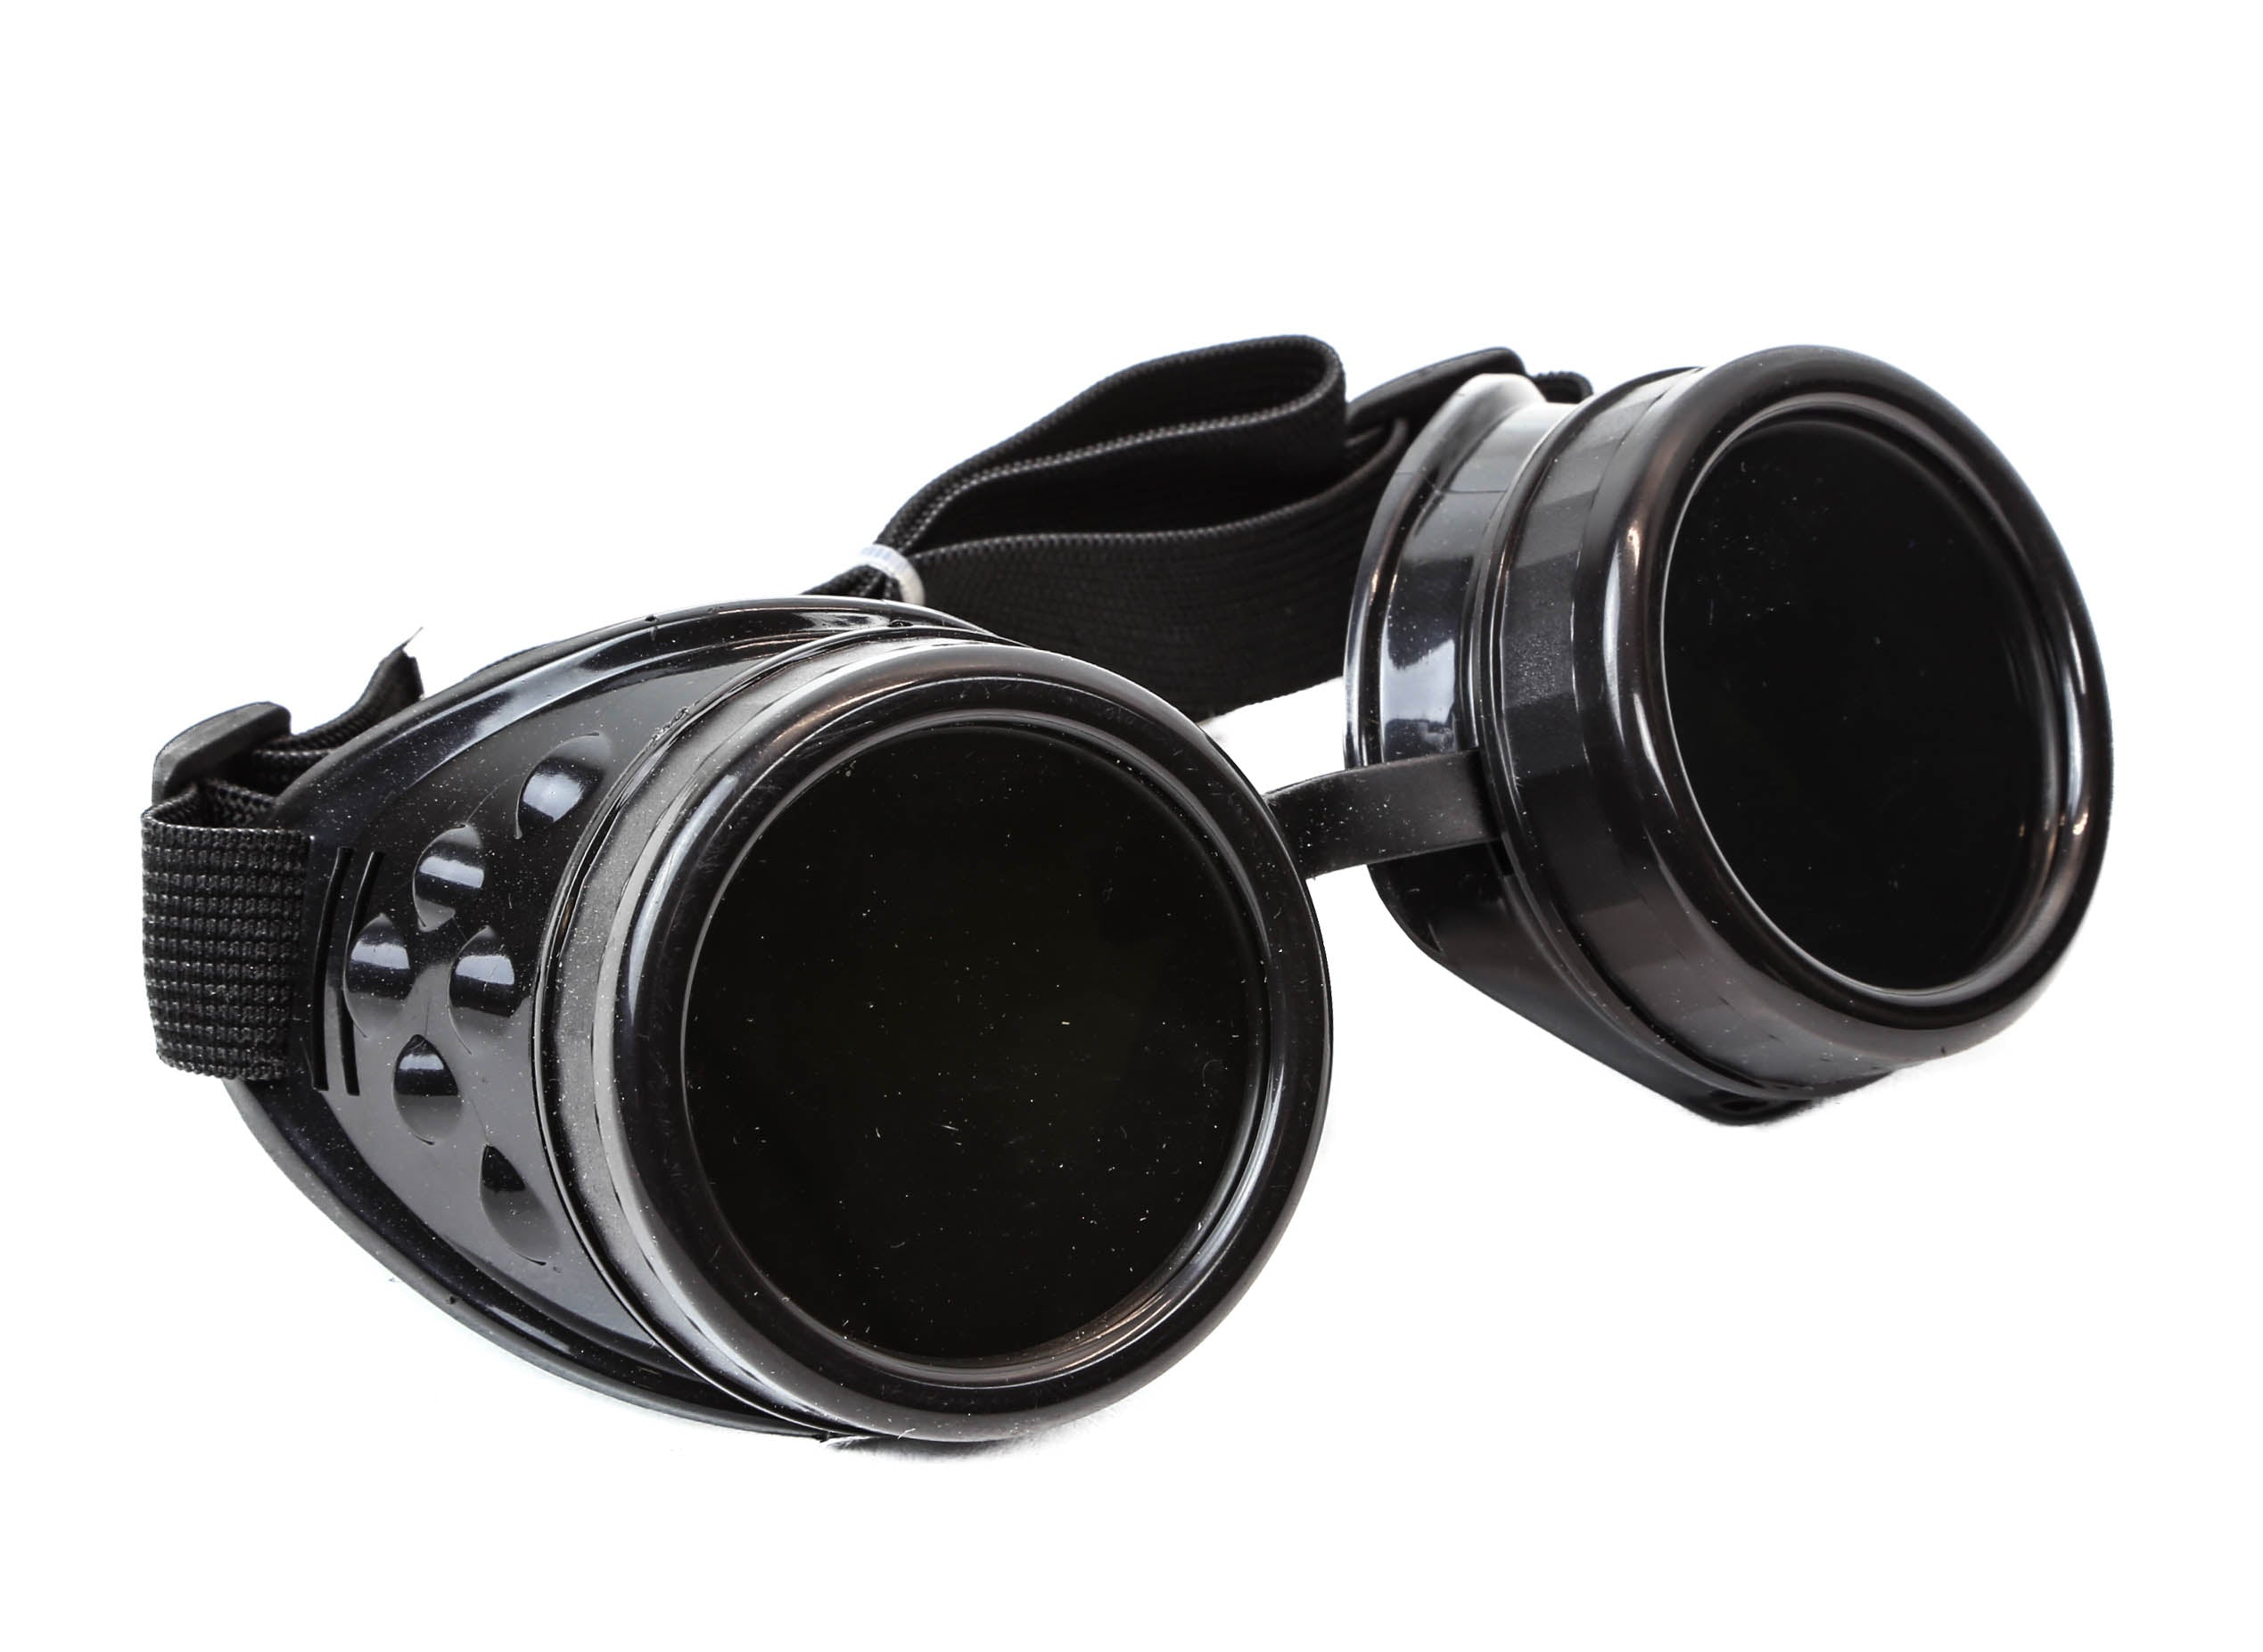 Plain Black Cosplay Goggles Mad Scientist Wielder Glasses DIY Halloween Costume